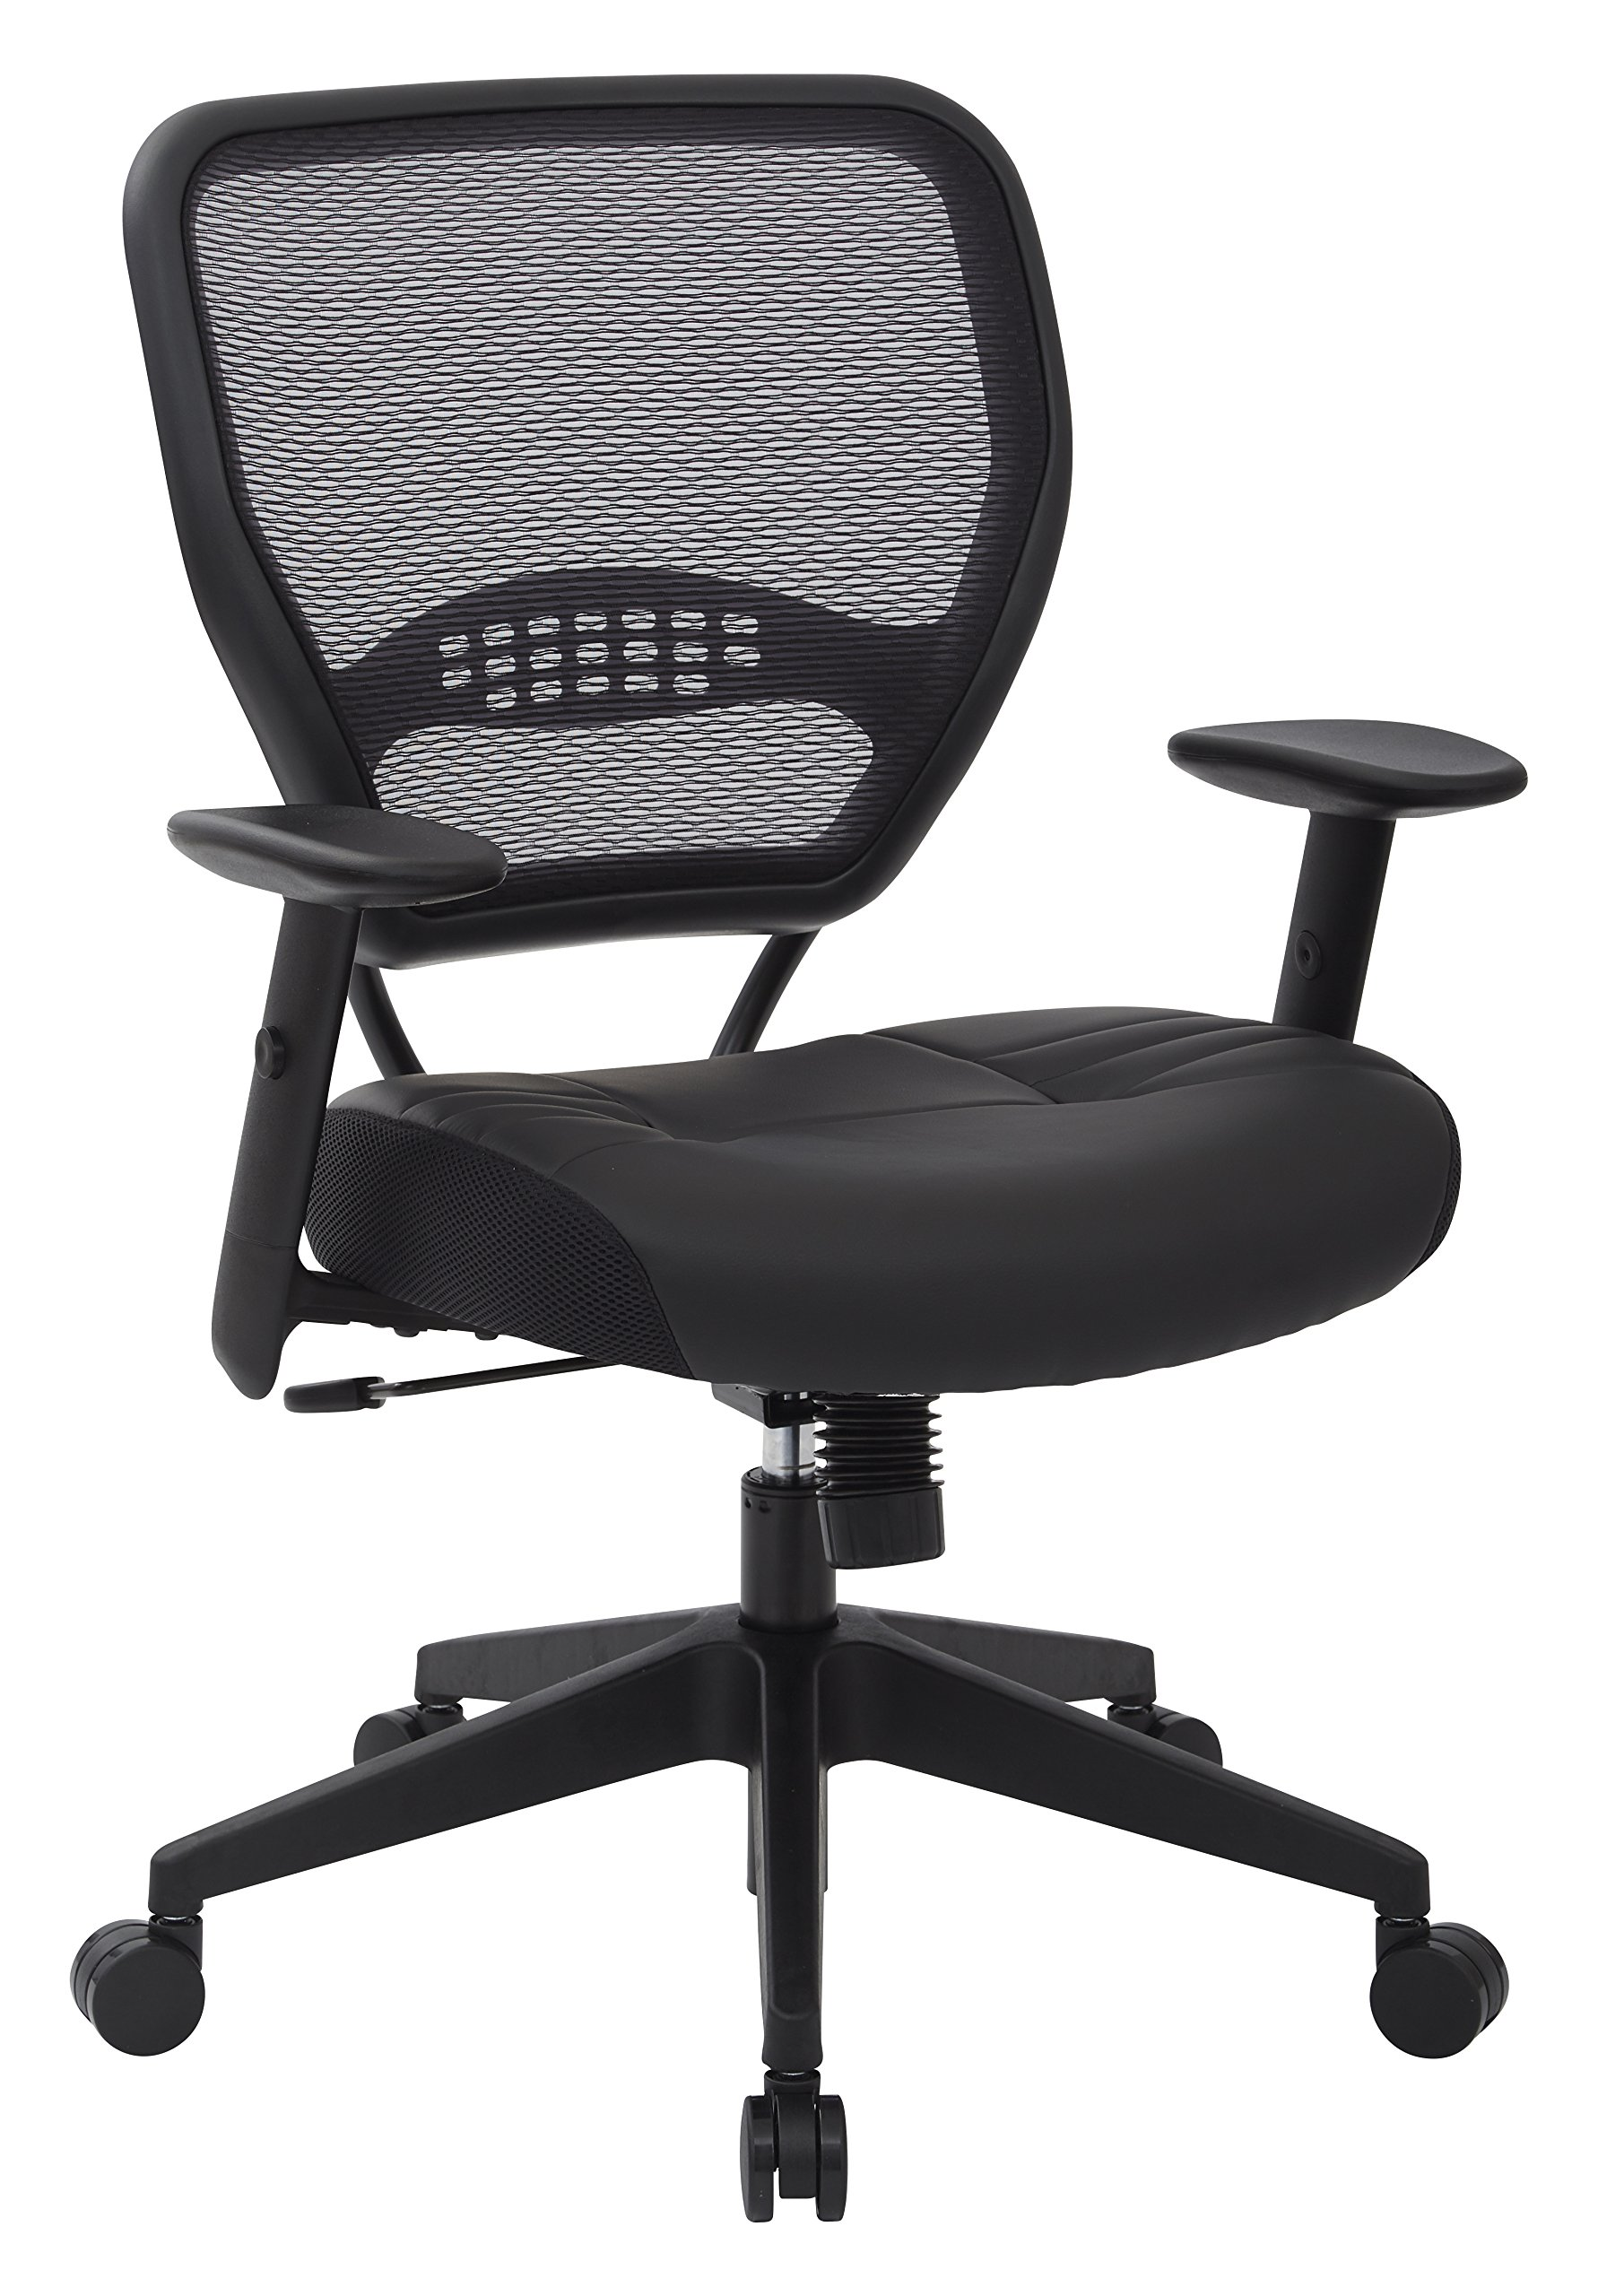 Seating Professional AirGrid Adjustable Managers